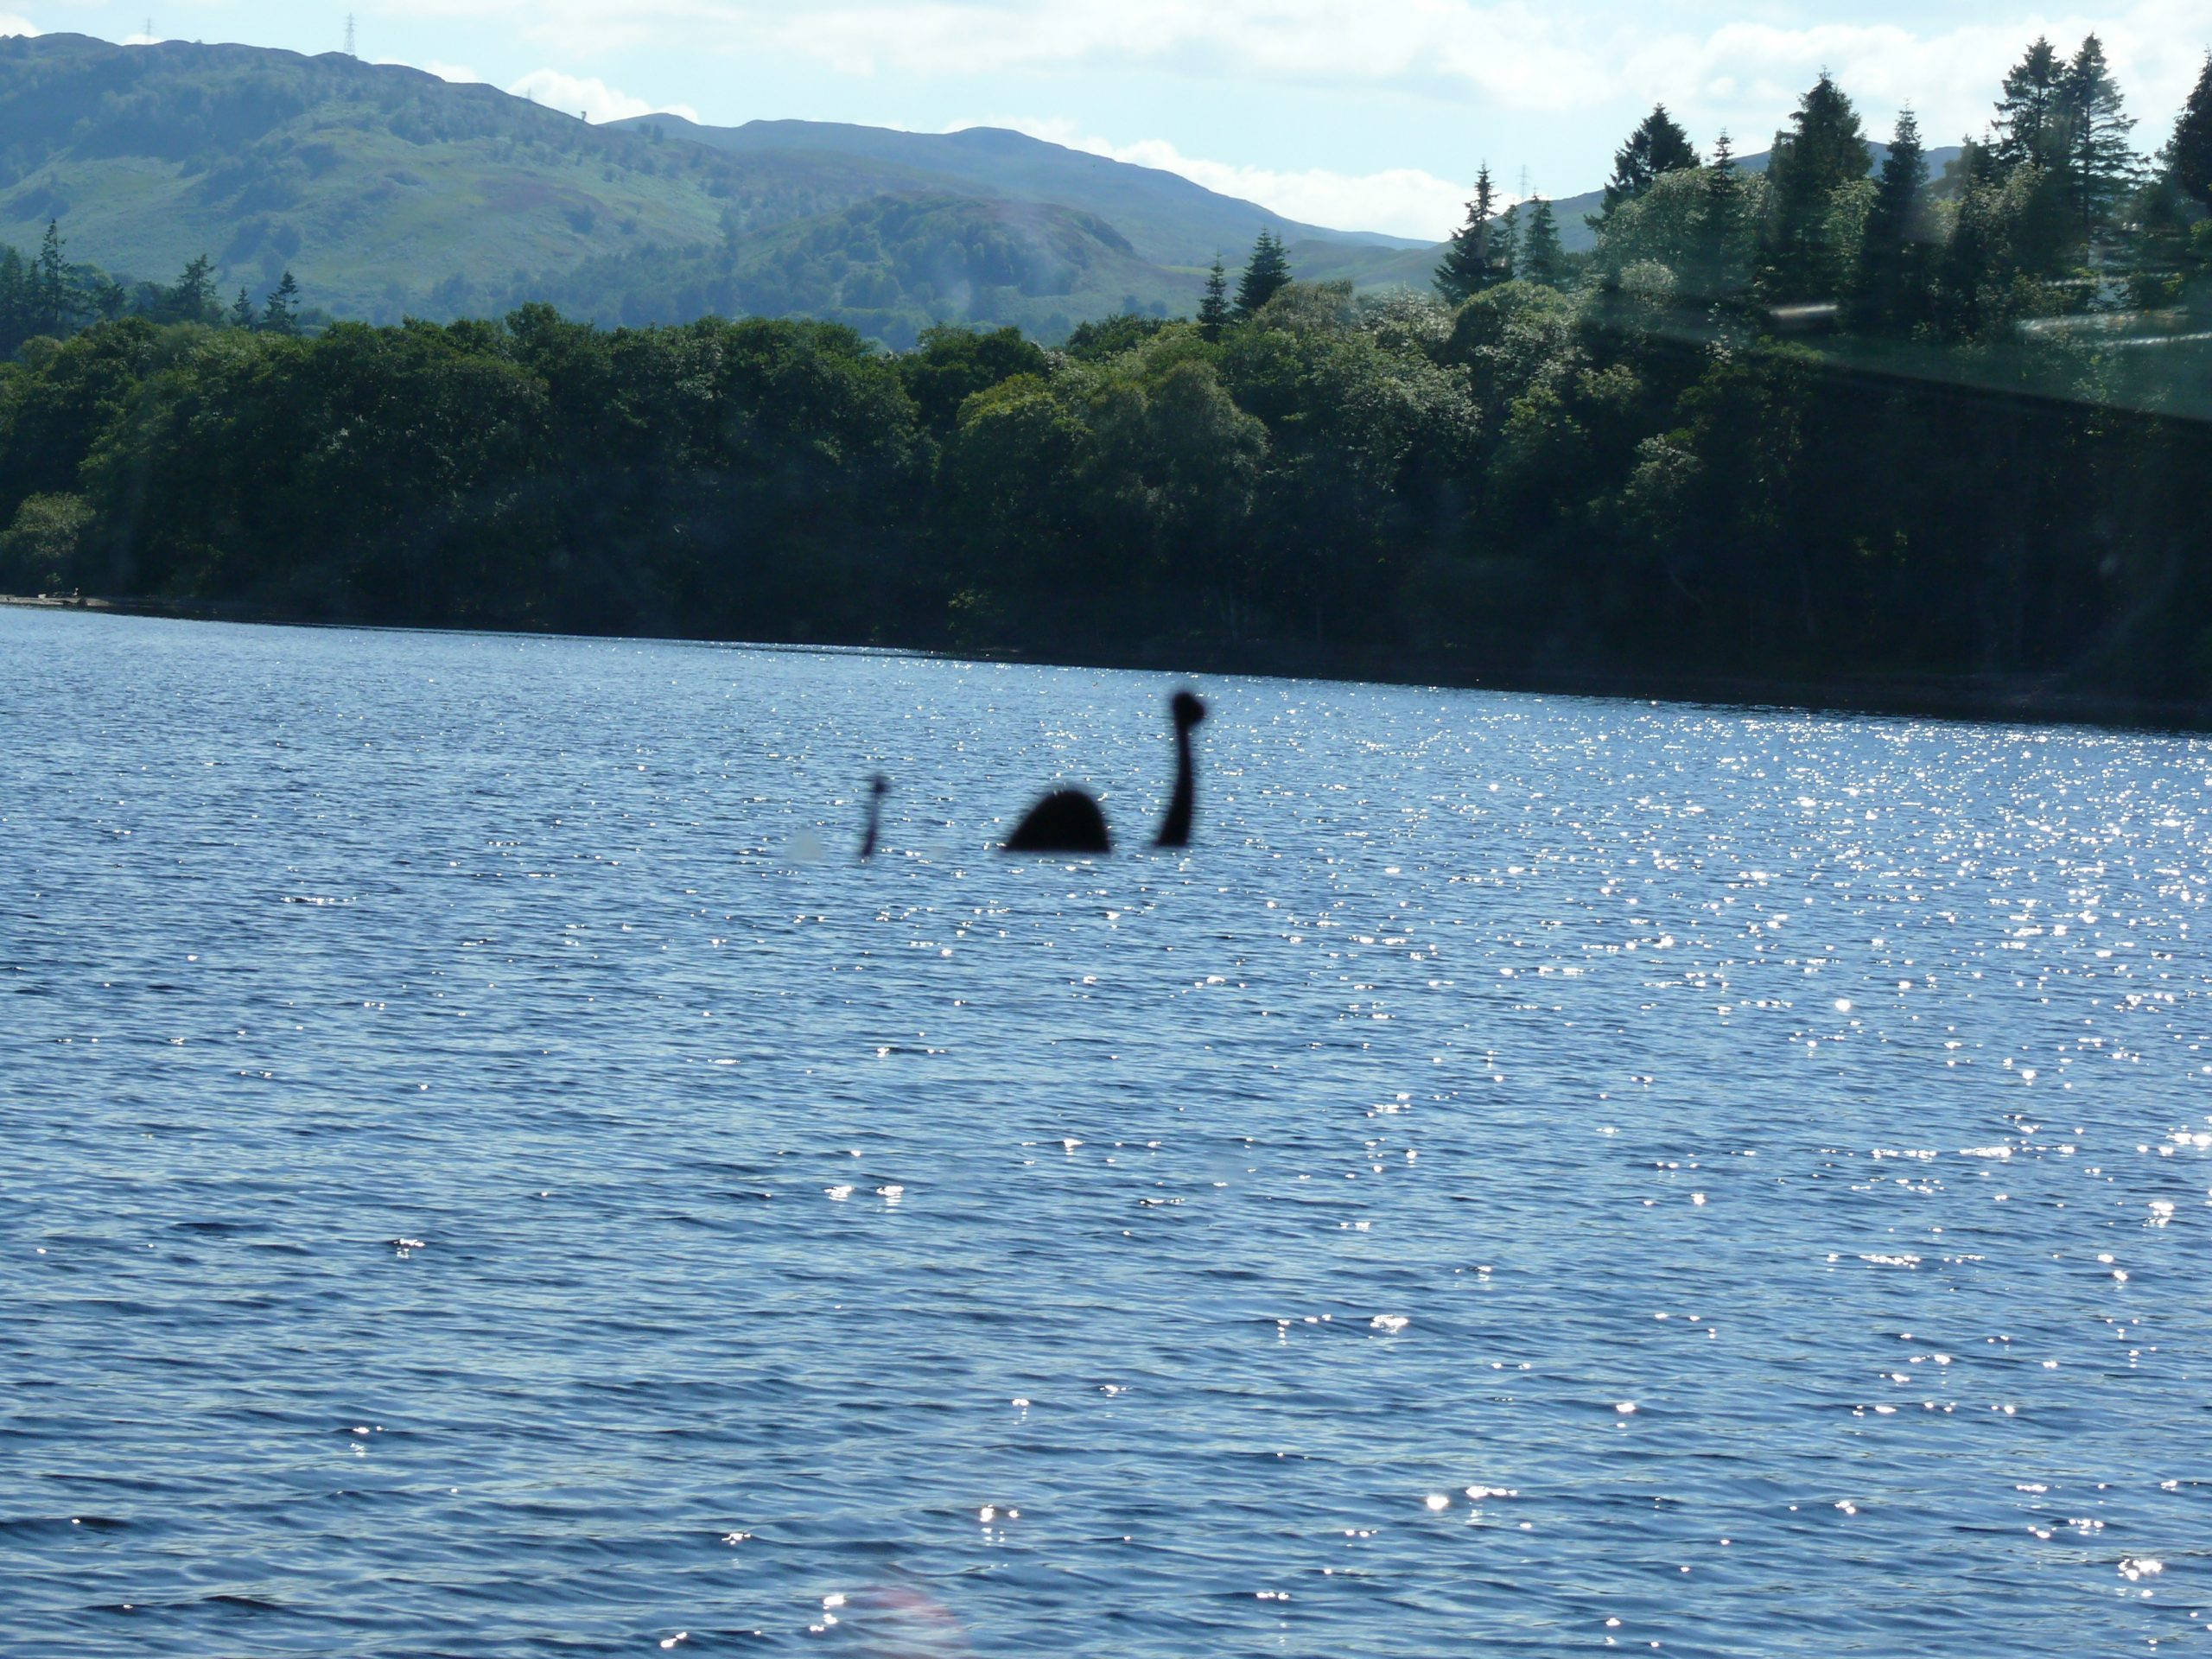 Let's Get Nessie!